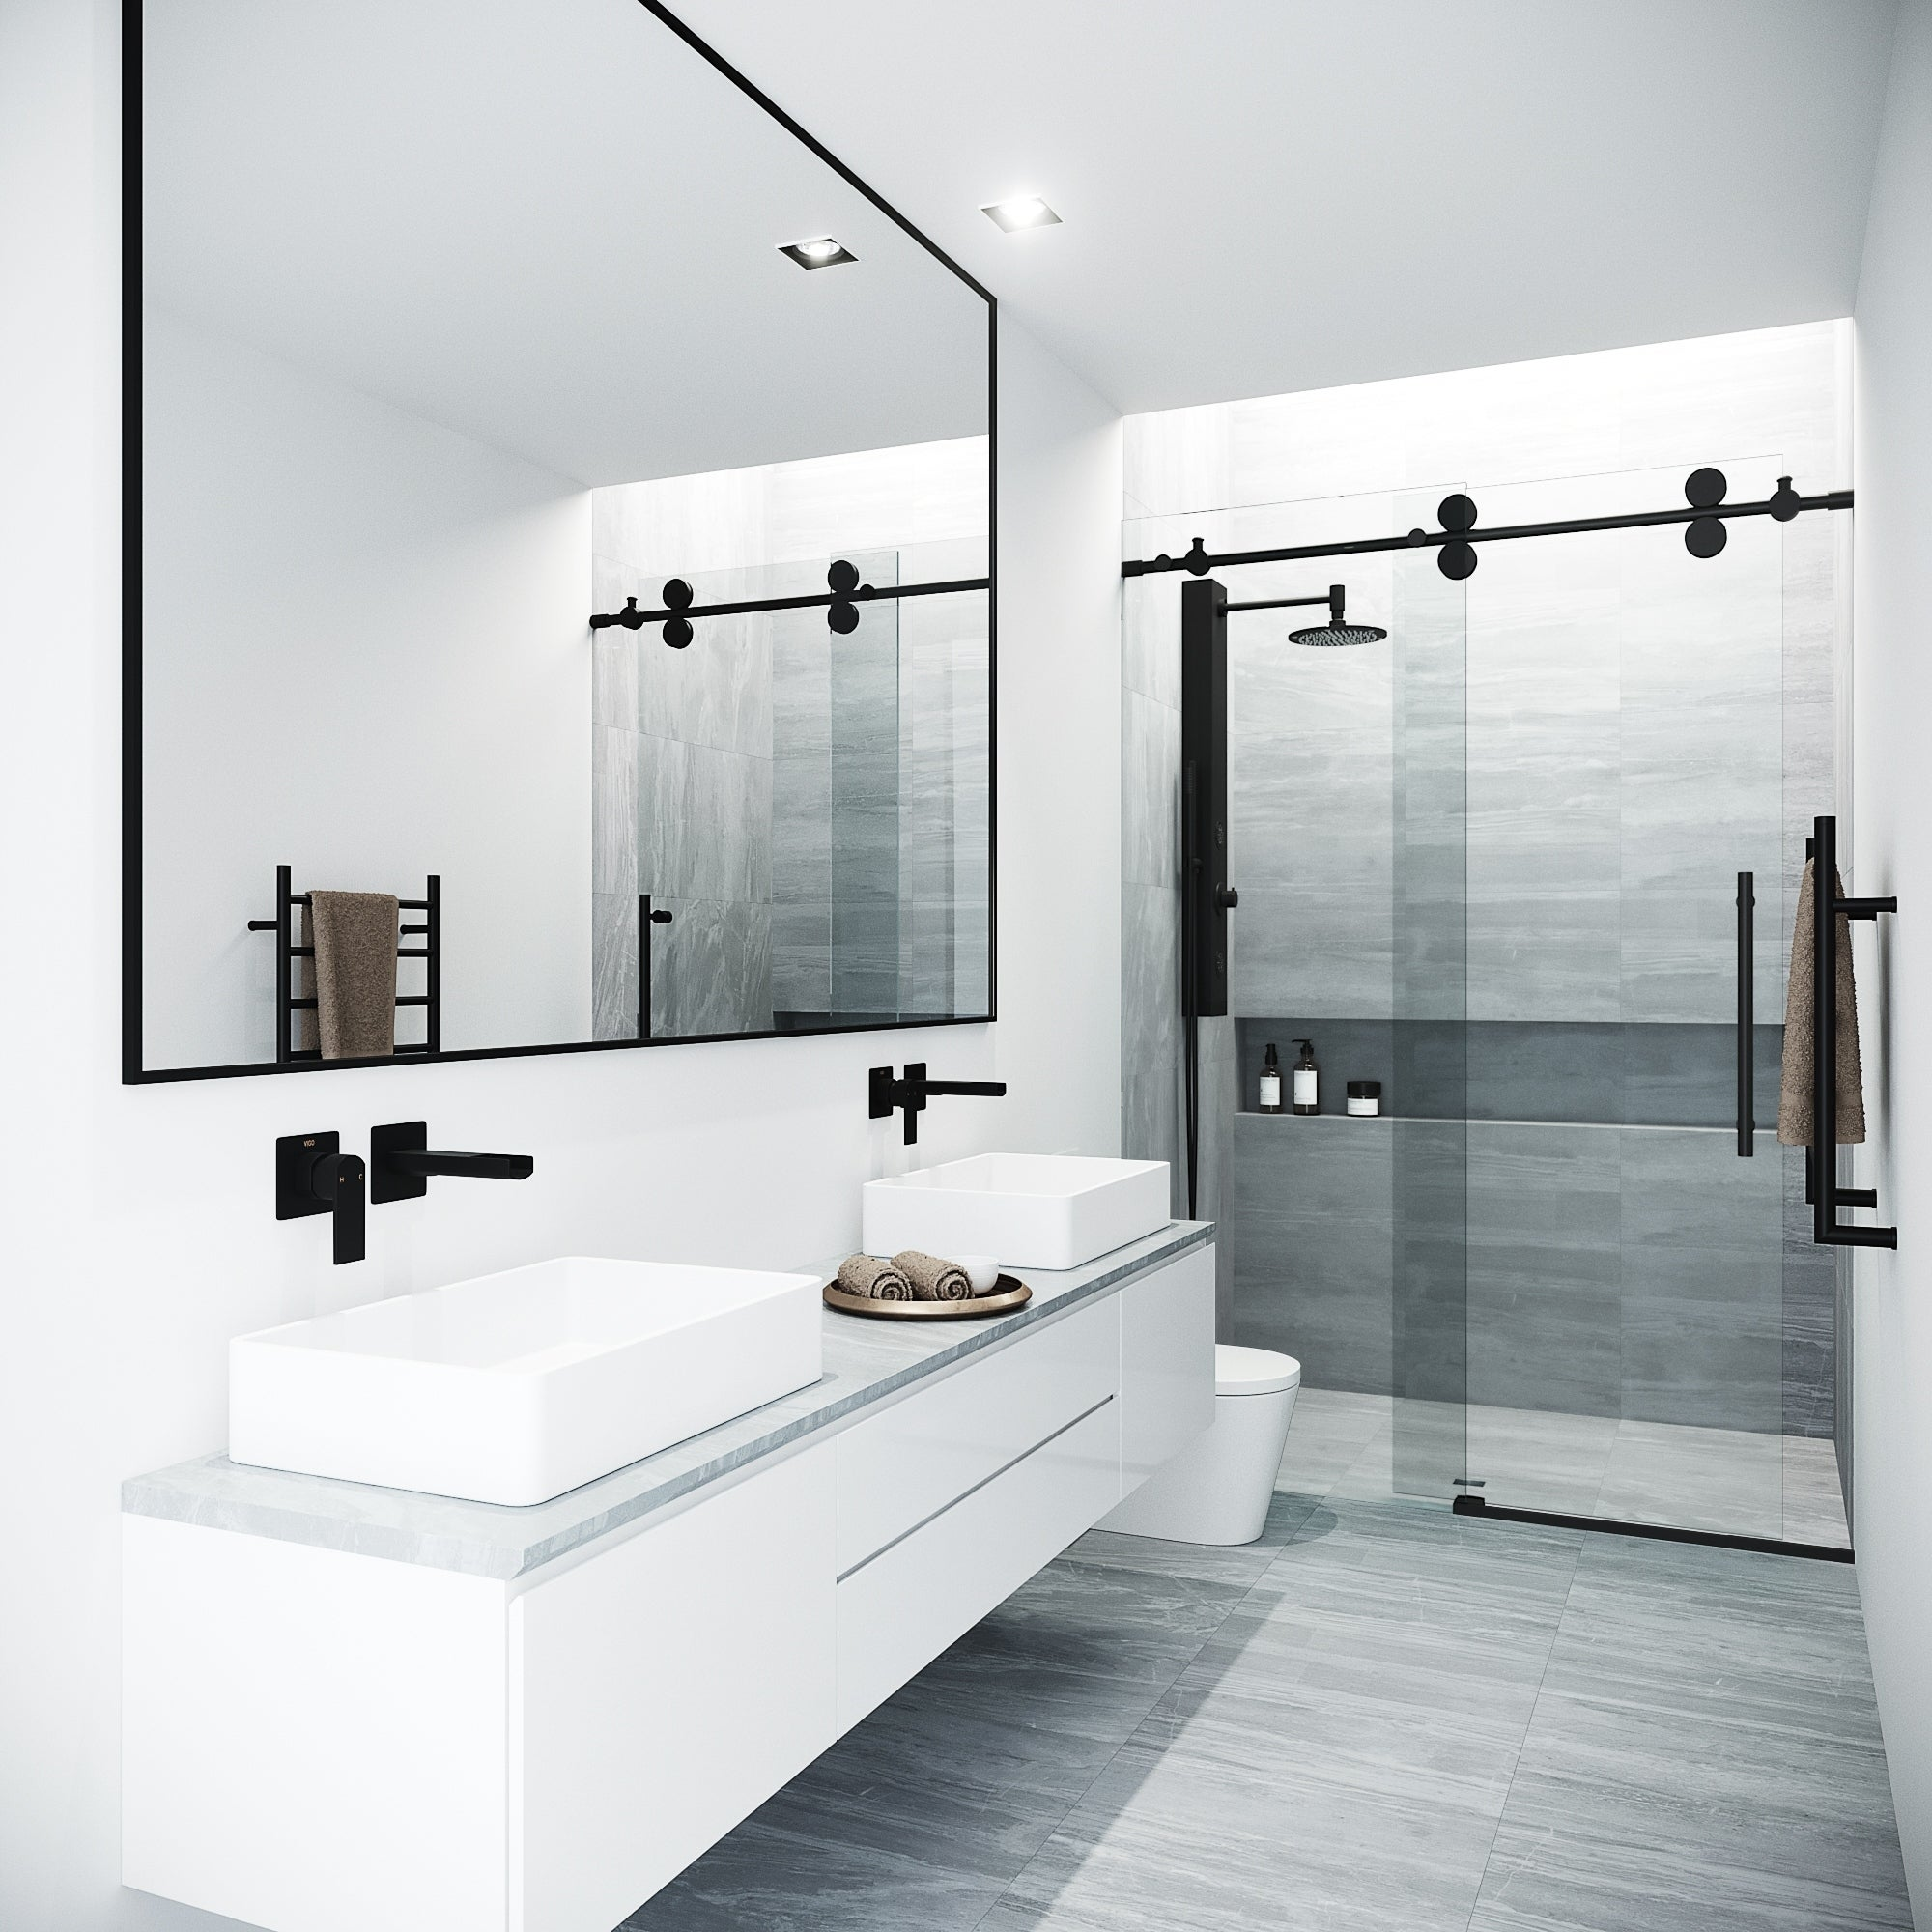 Bathroom Layout 101 The Essential Considerations When Designing A Bathroom Remodel Straight Line Design Remodeling